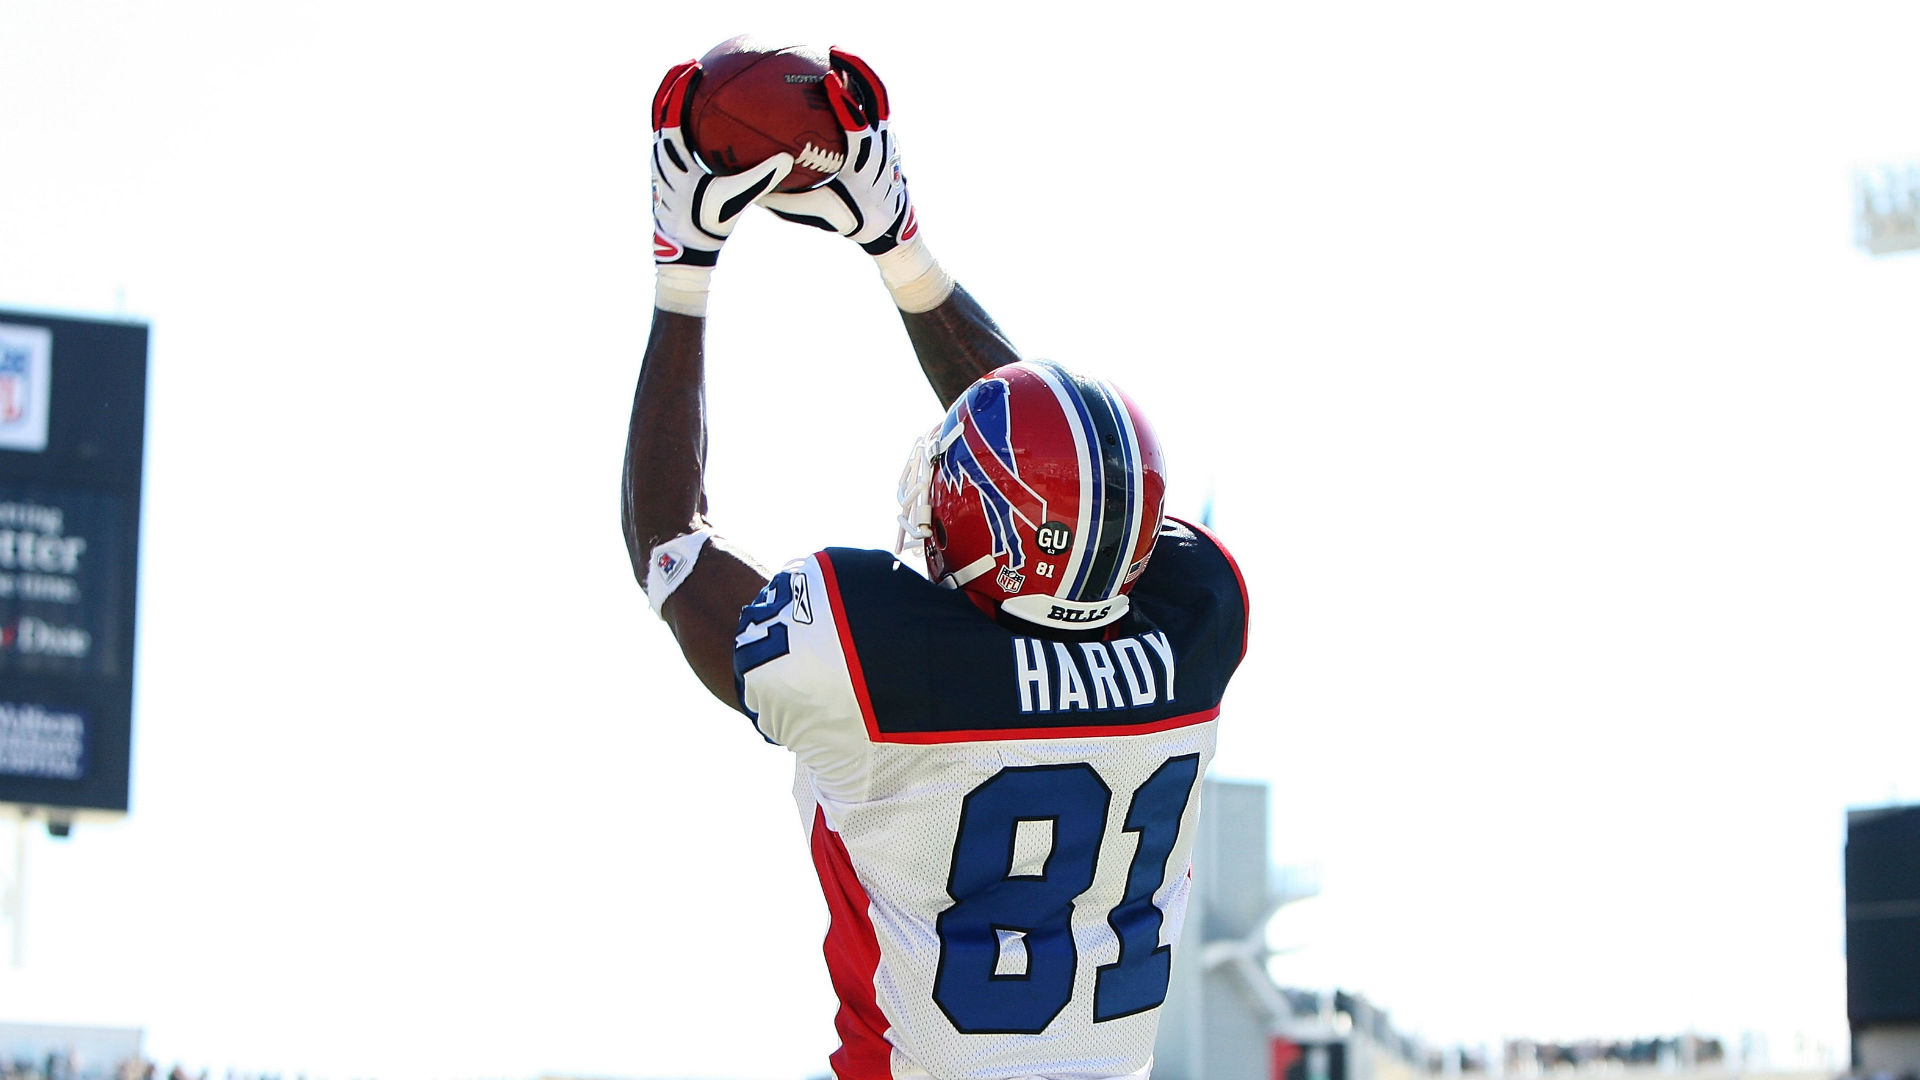 Former Bills WR Hardy dead at 31